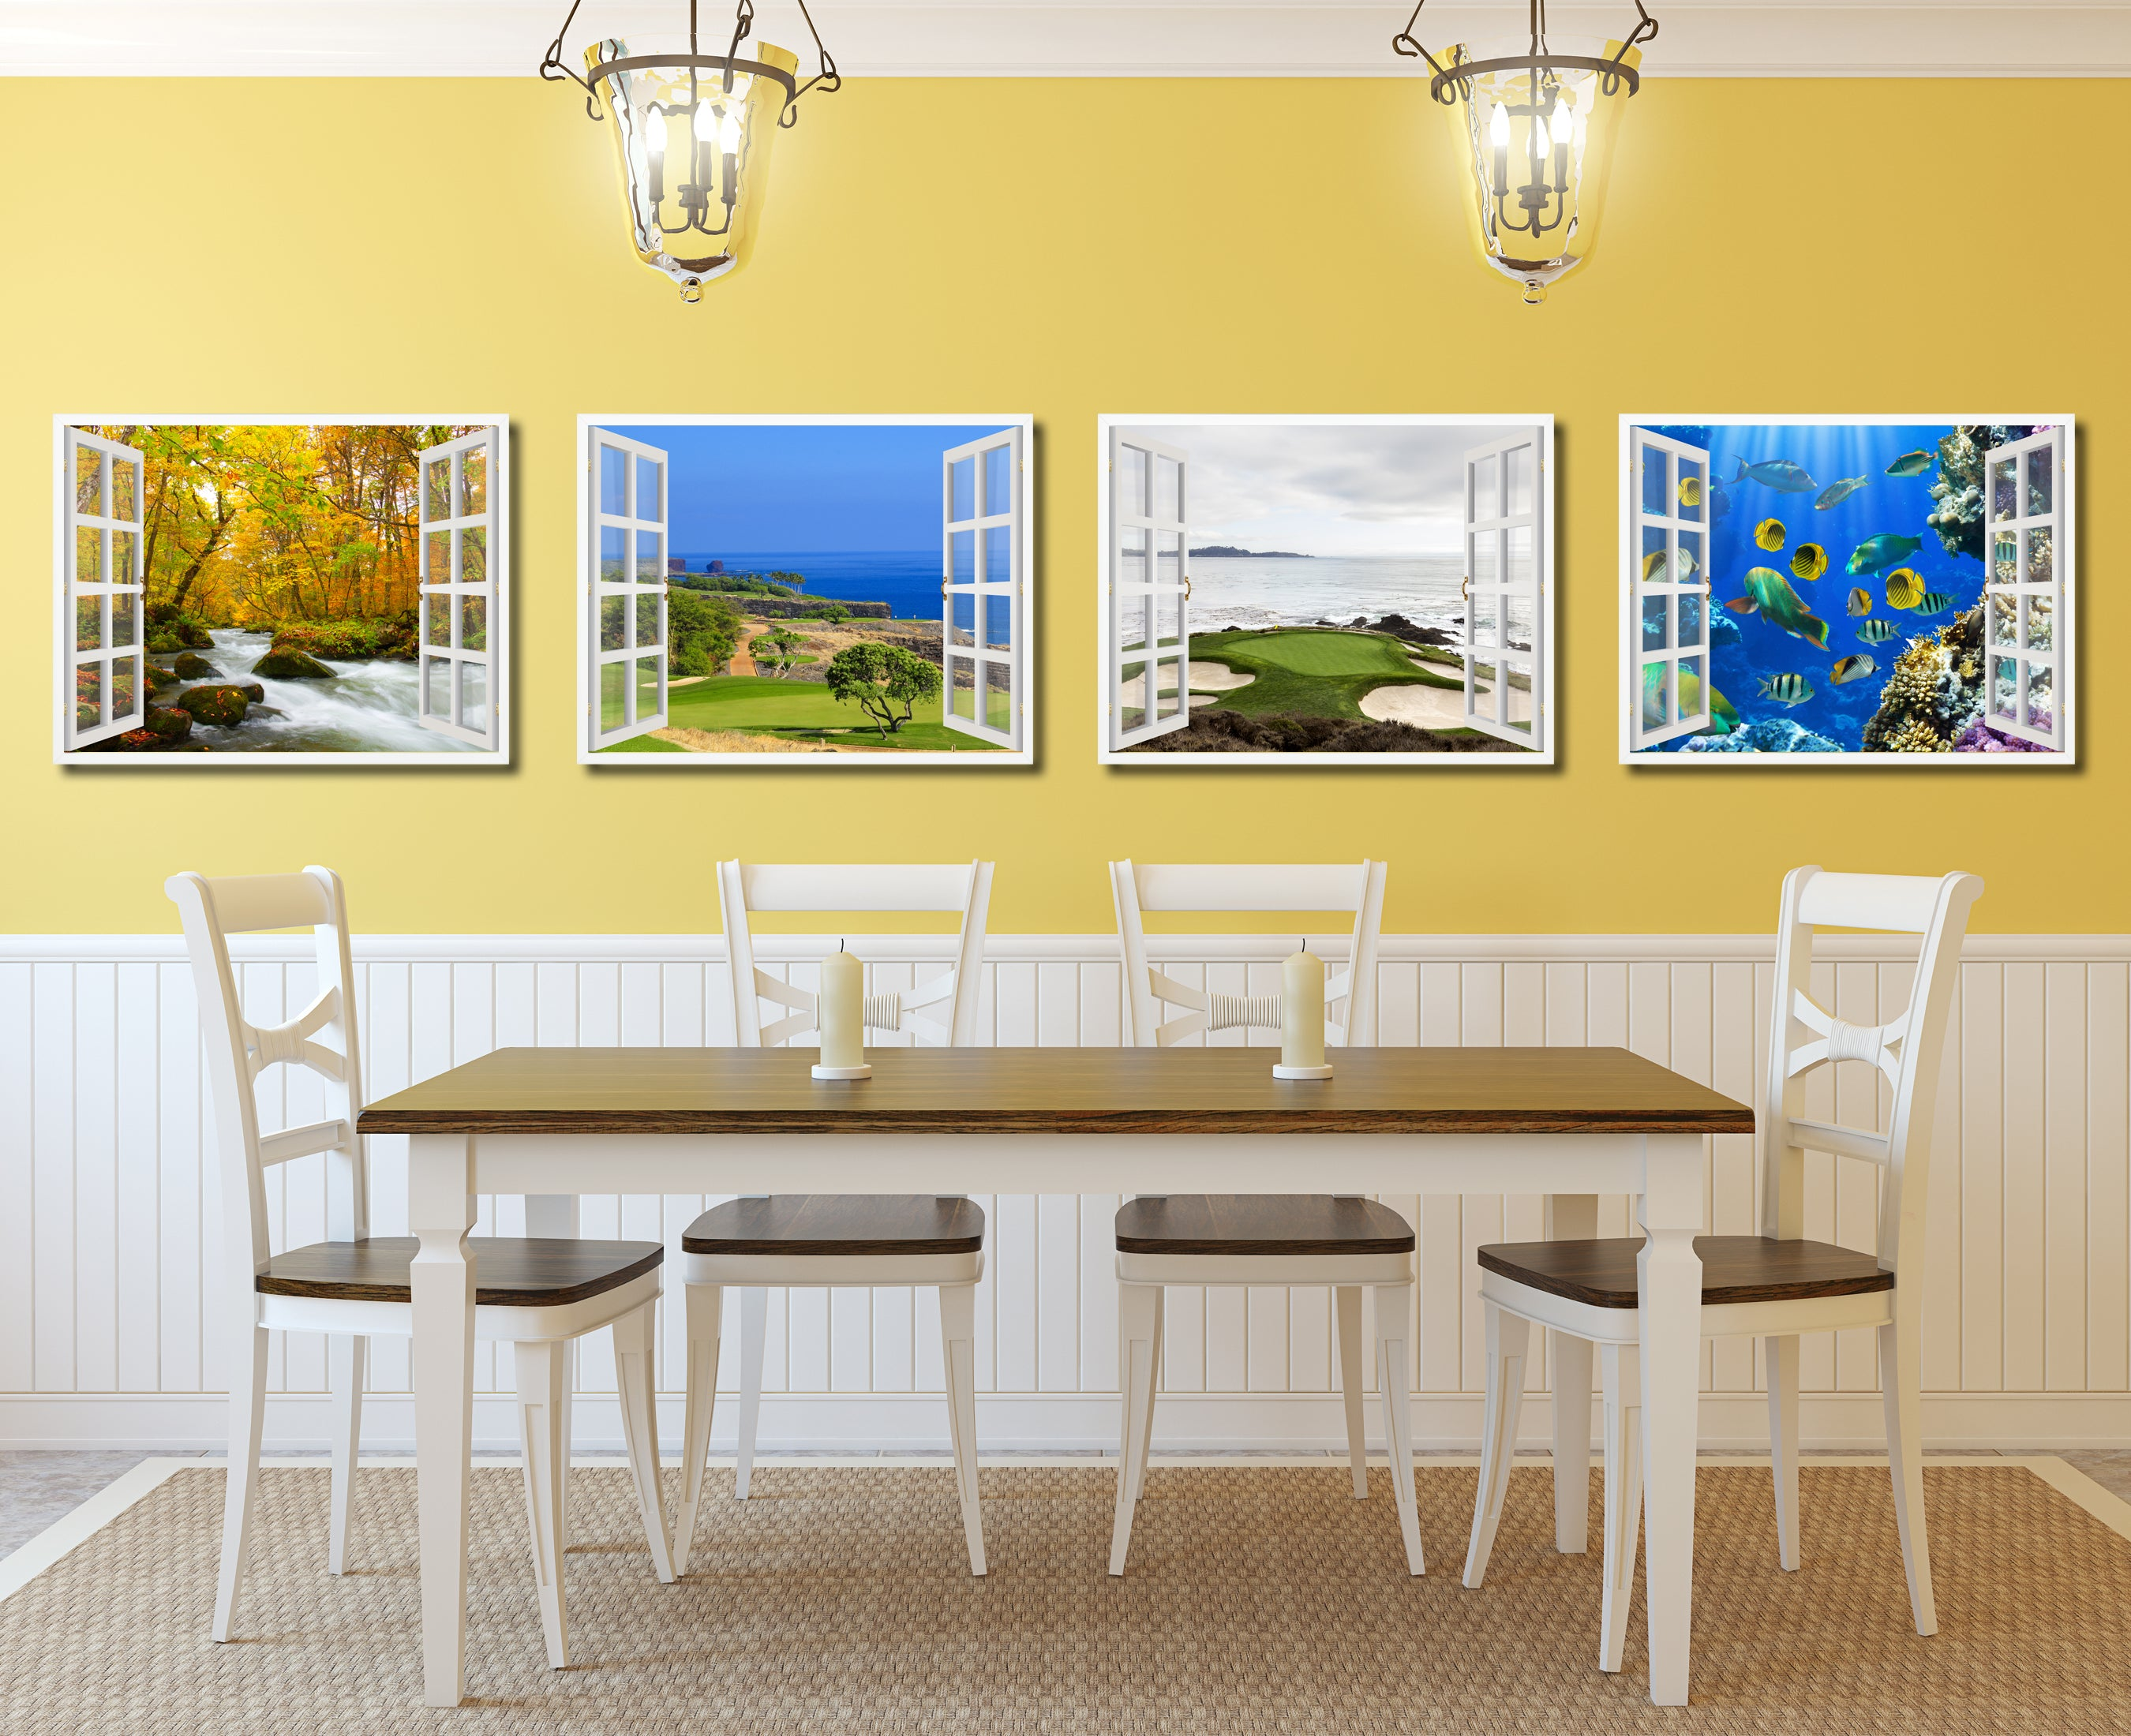 Coastal Golf Course View Picture French Window Framed Canvas Print Home Decor Wall Art Collection